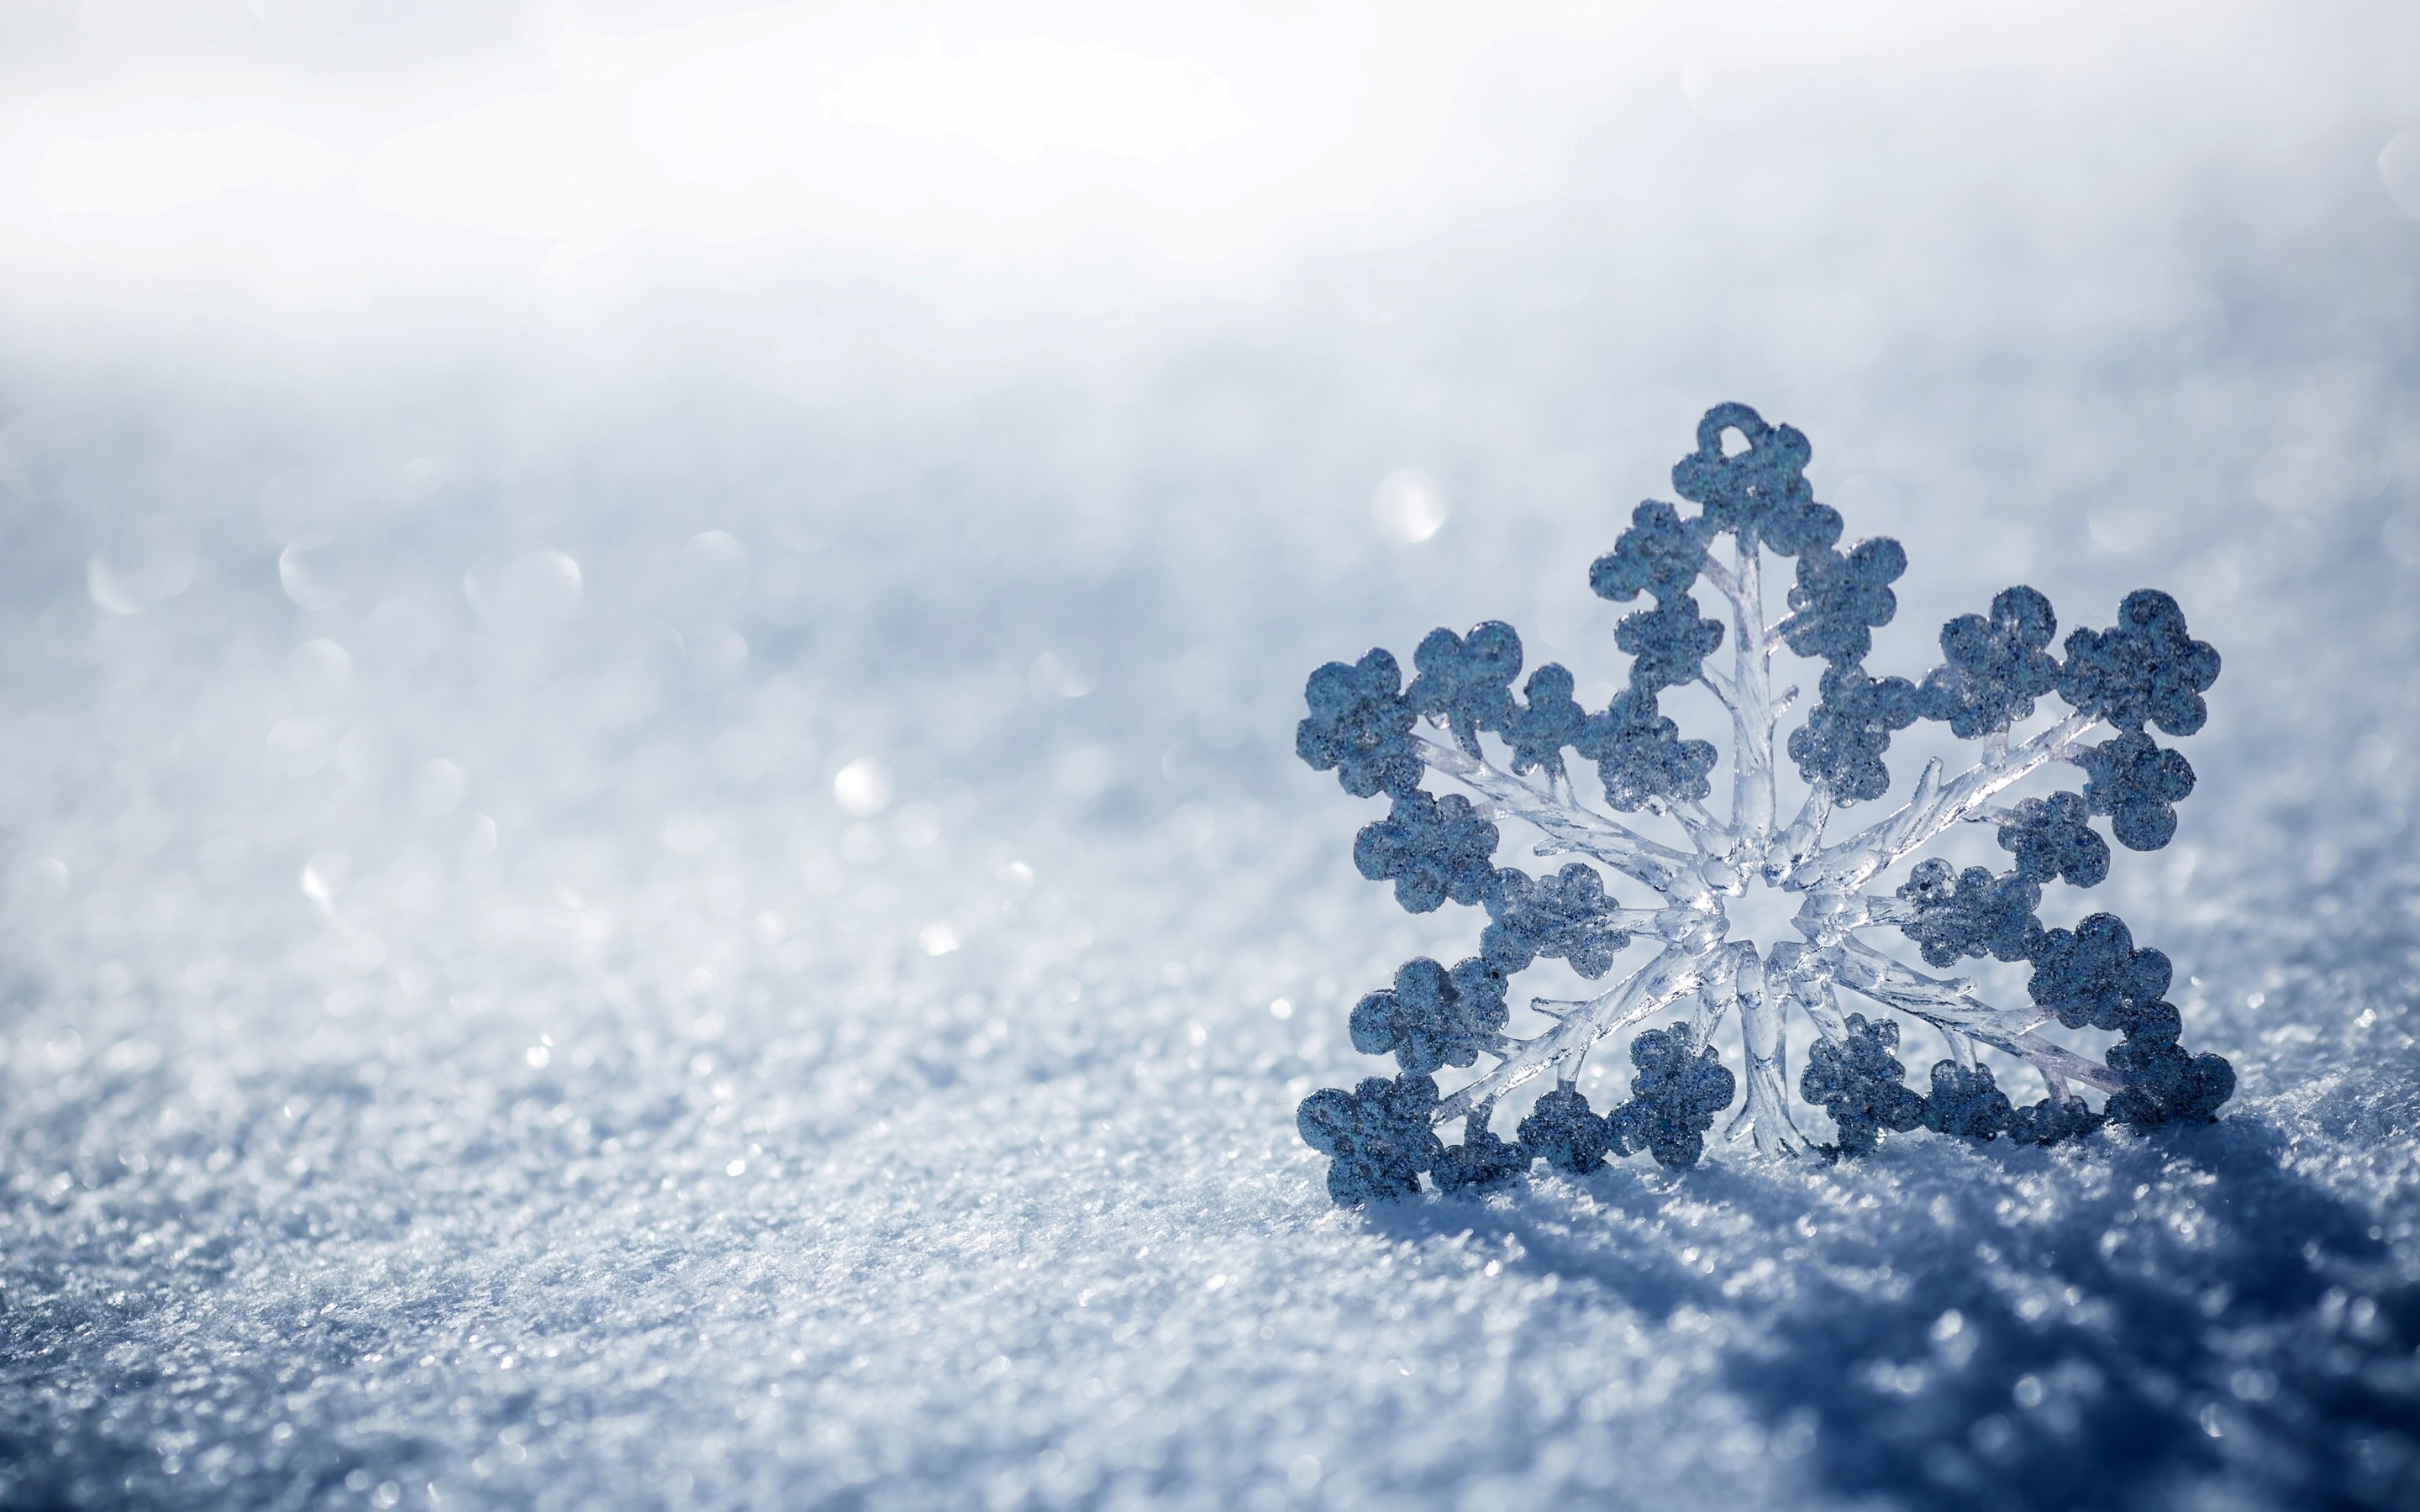 Ice Snow Wallpaper